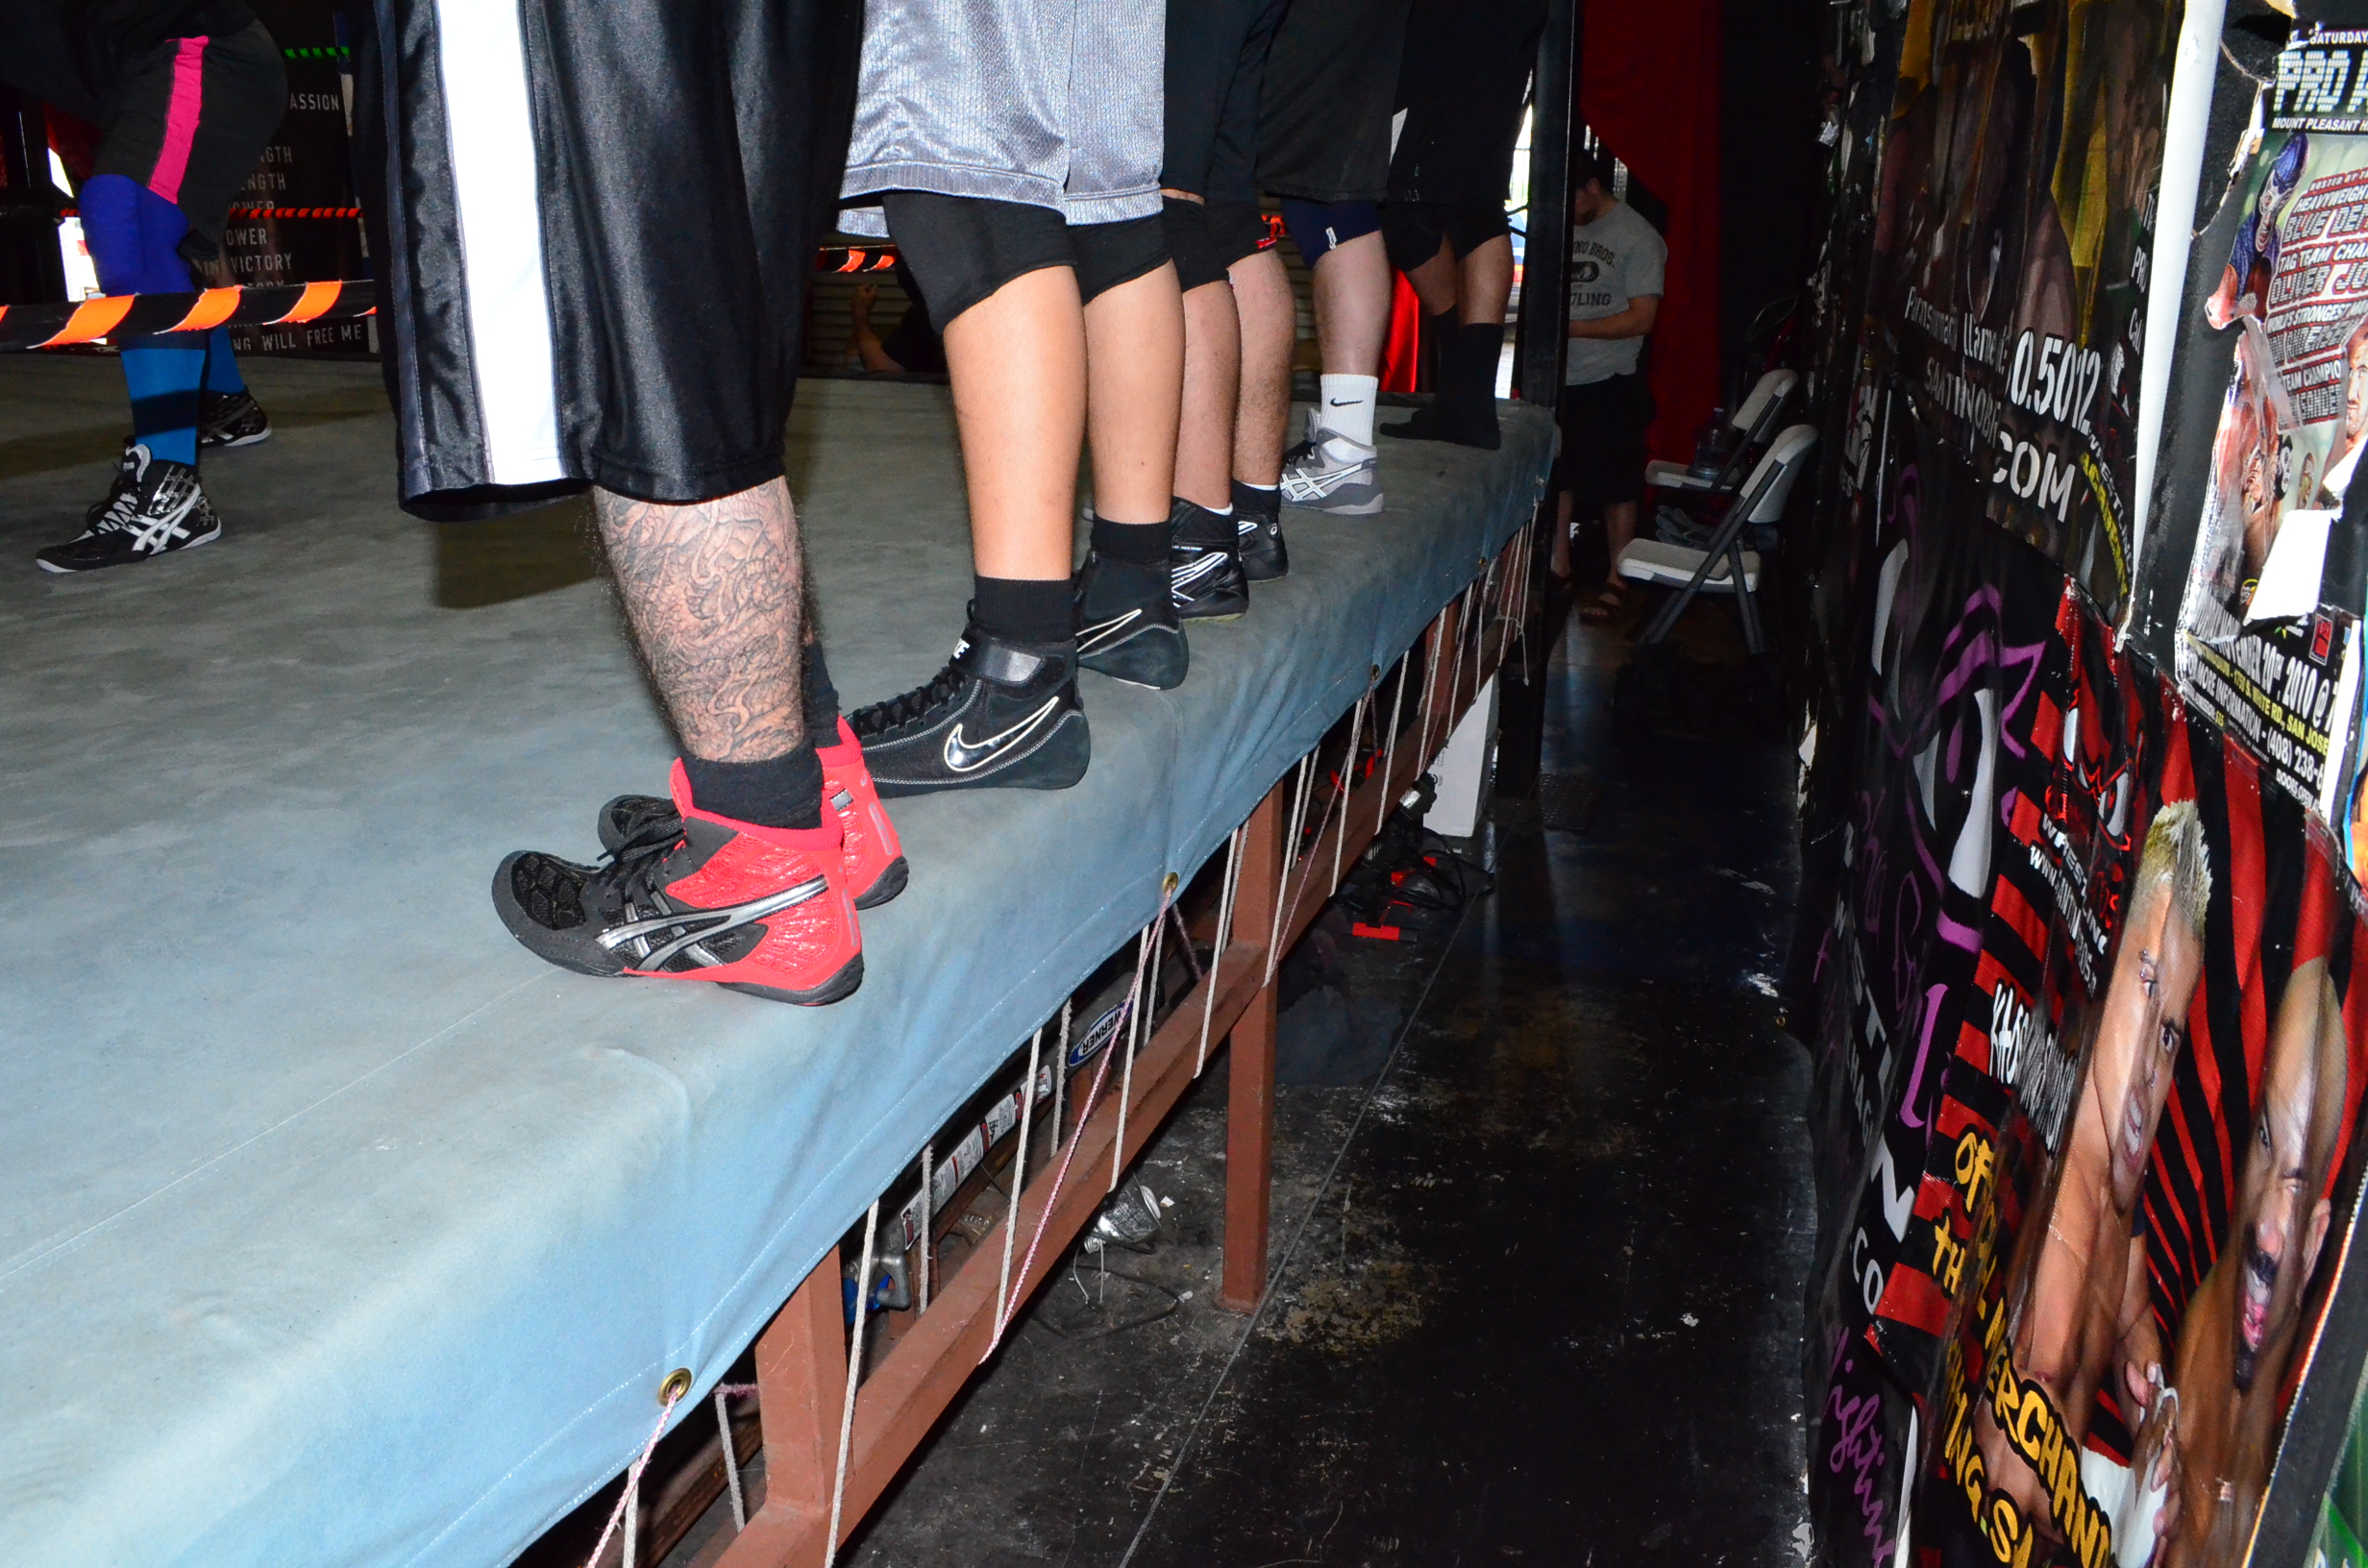 Pro Wrestling Training pictures – February 2015 – Santino